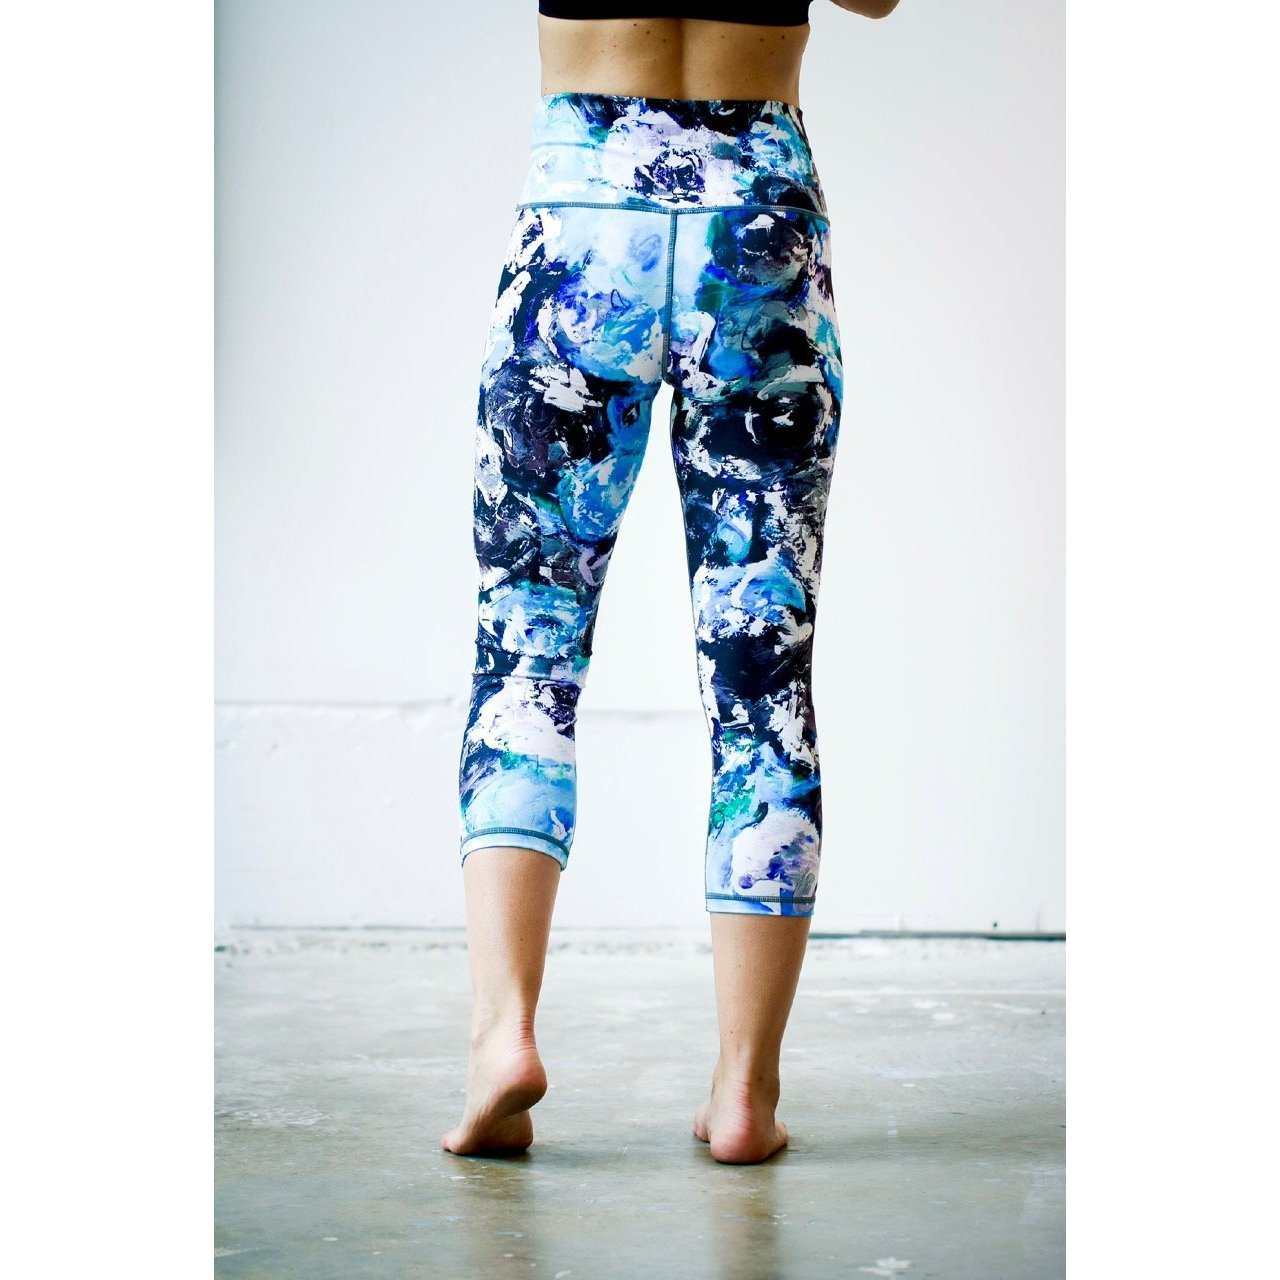 Blue Gray Rose Yoga Capris